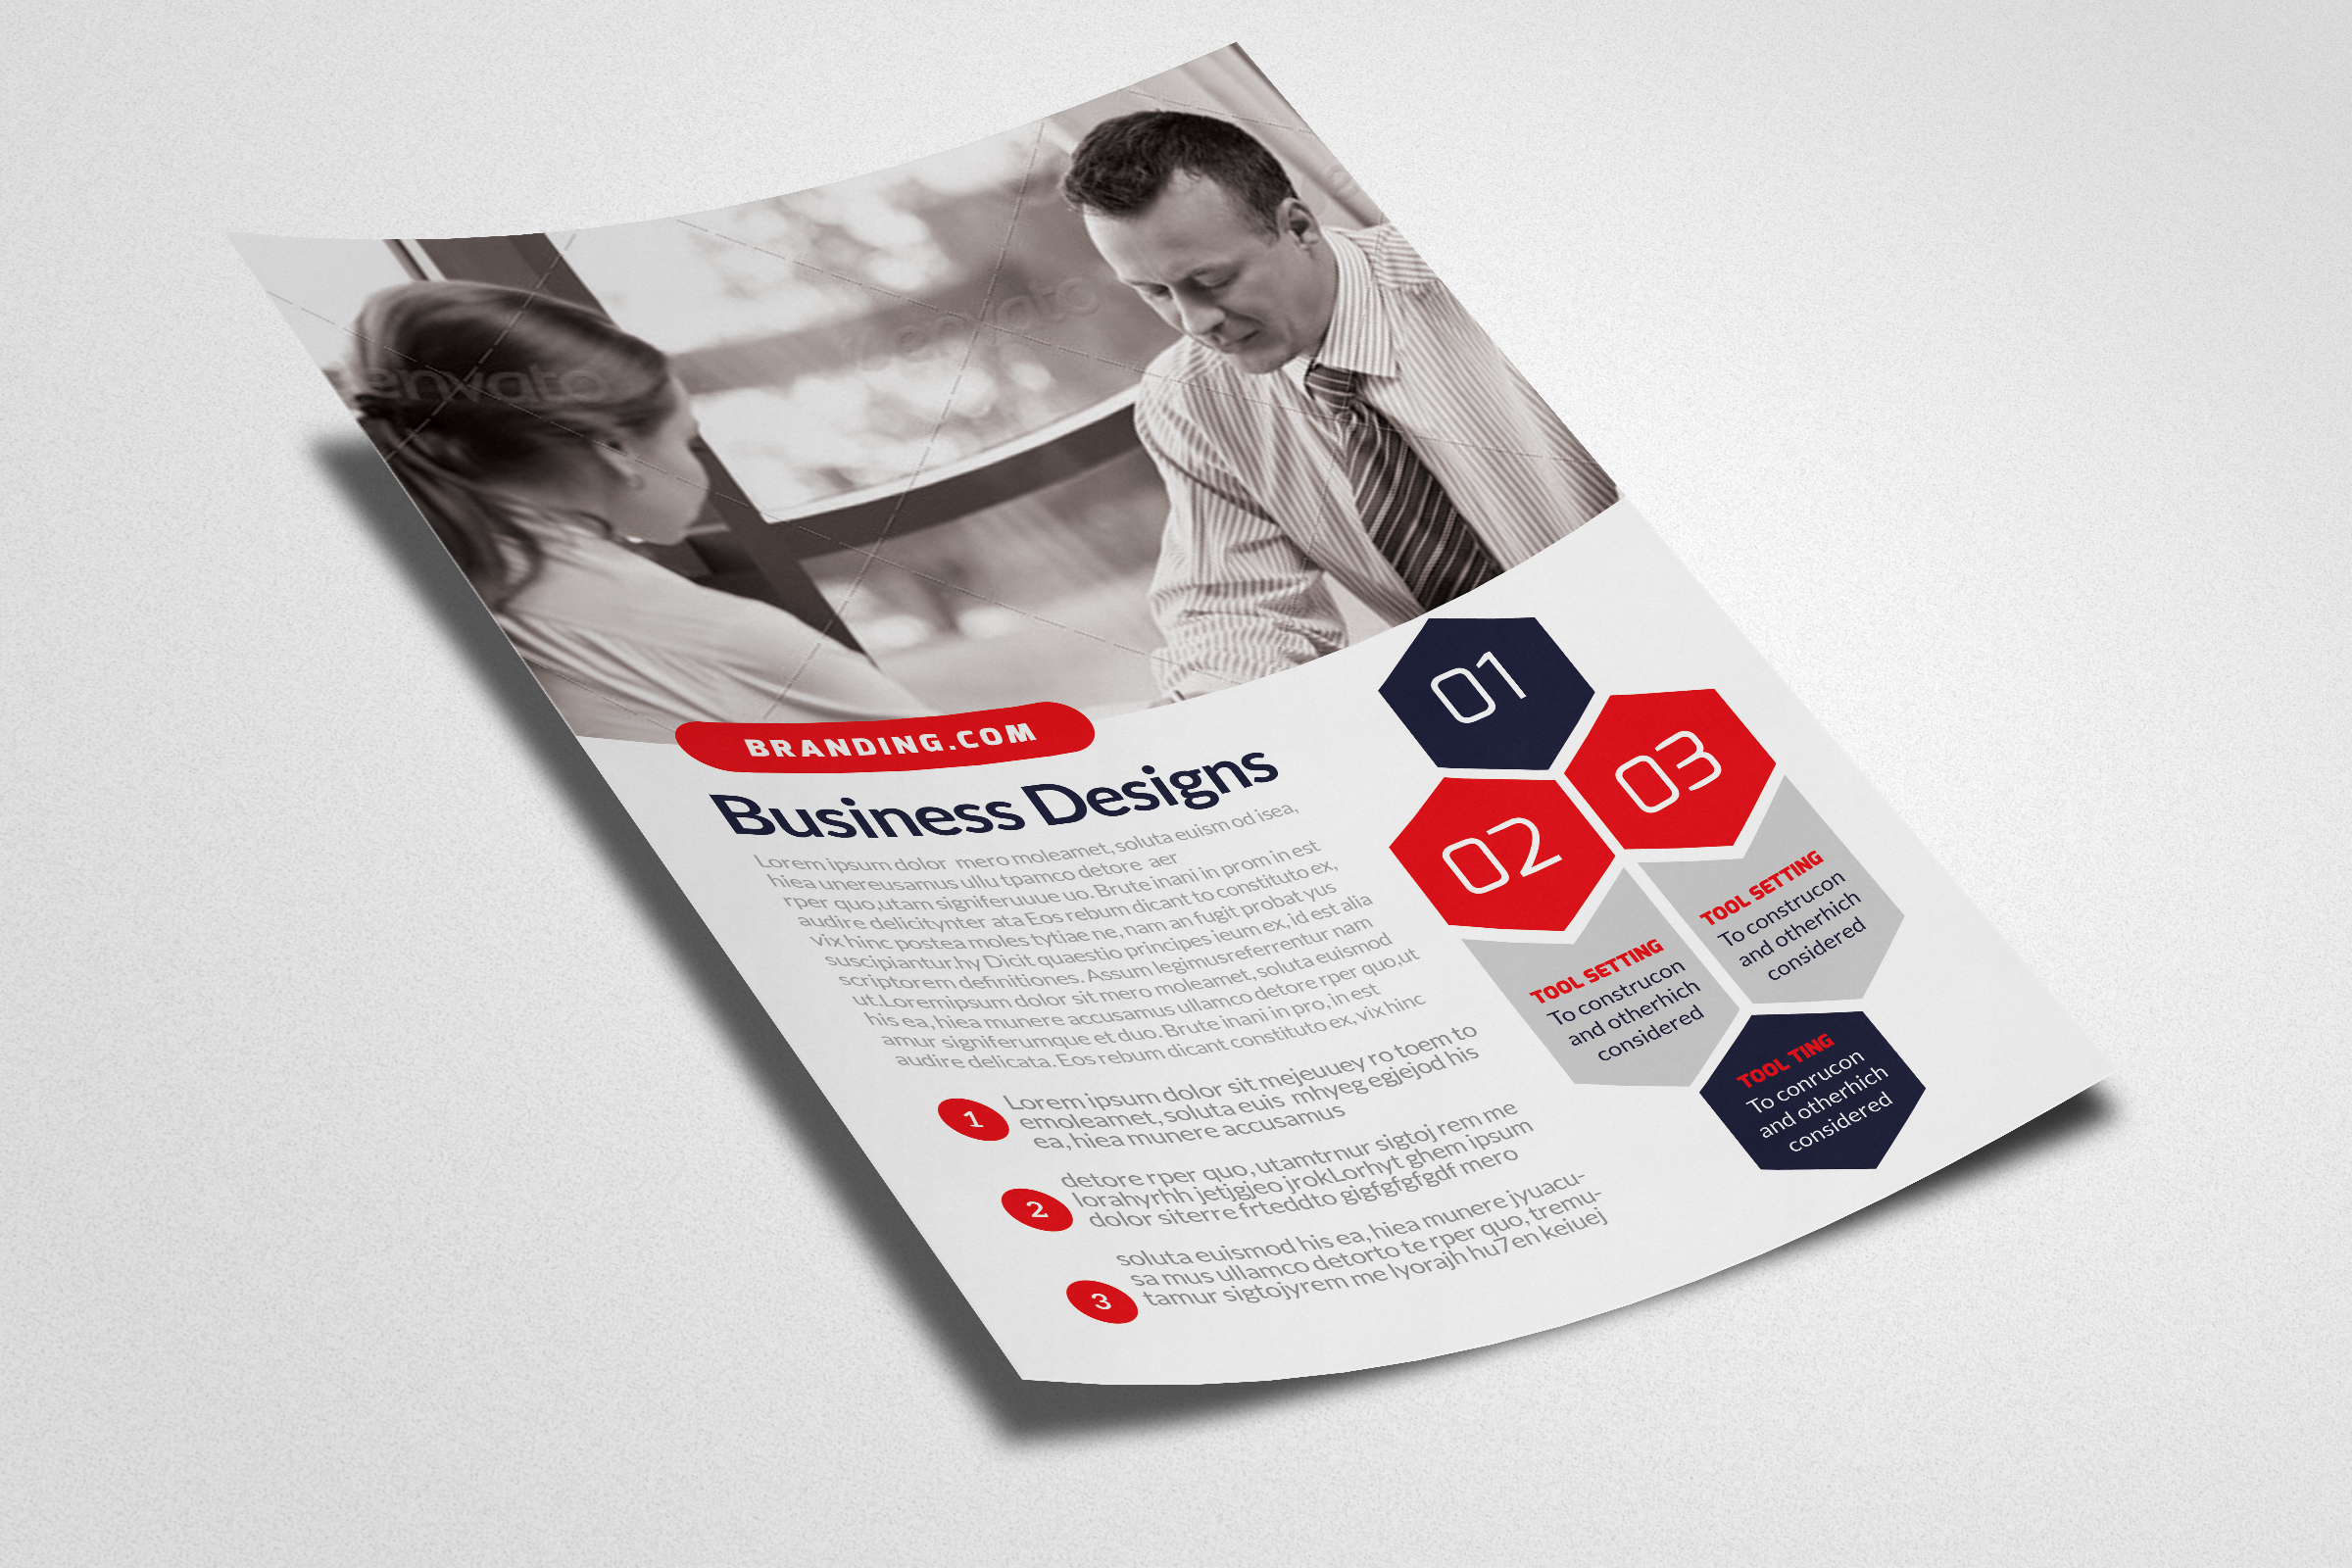 Business Training Flyer example image 2